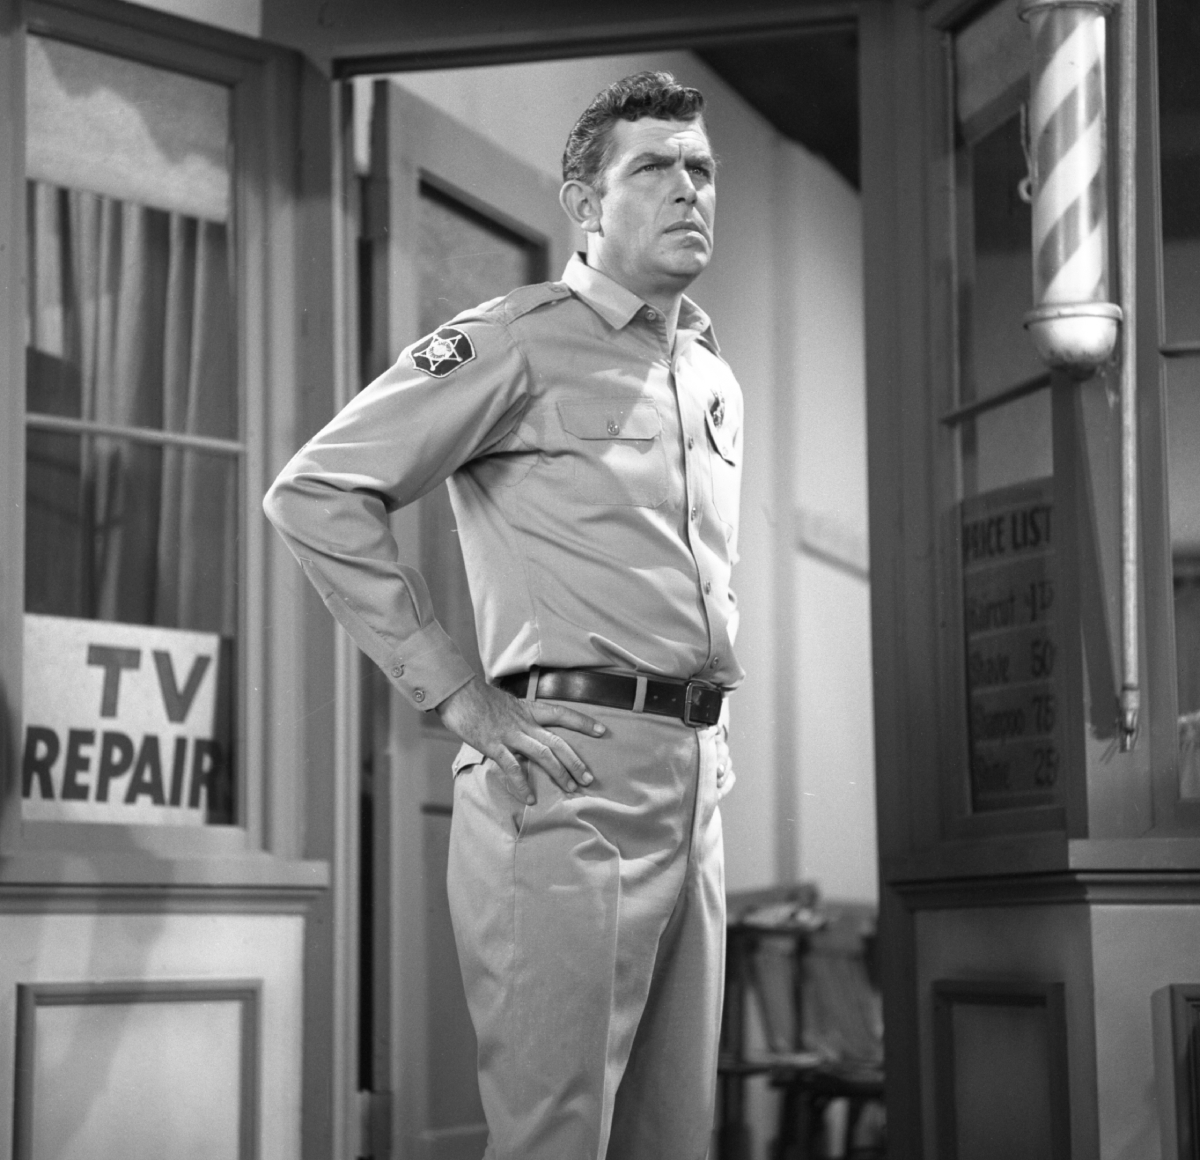 Actor Andy Griffith as Sheriff Andy Taylor of 'The Andy Griffith Show'